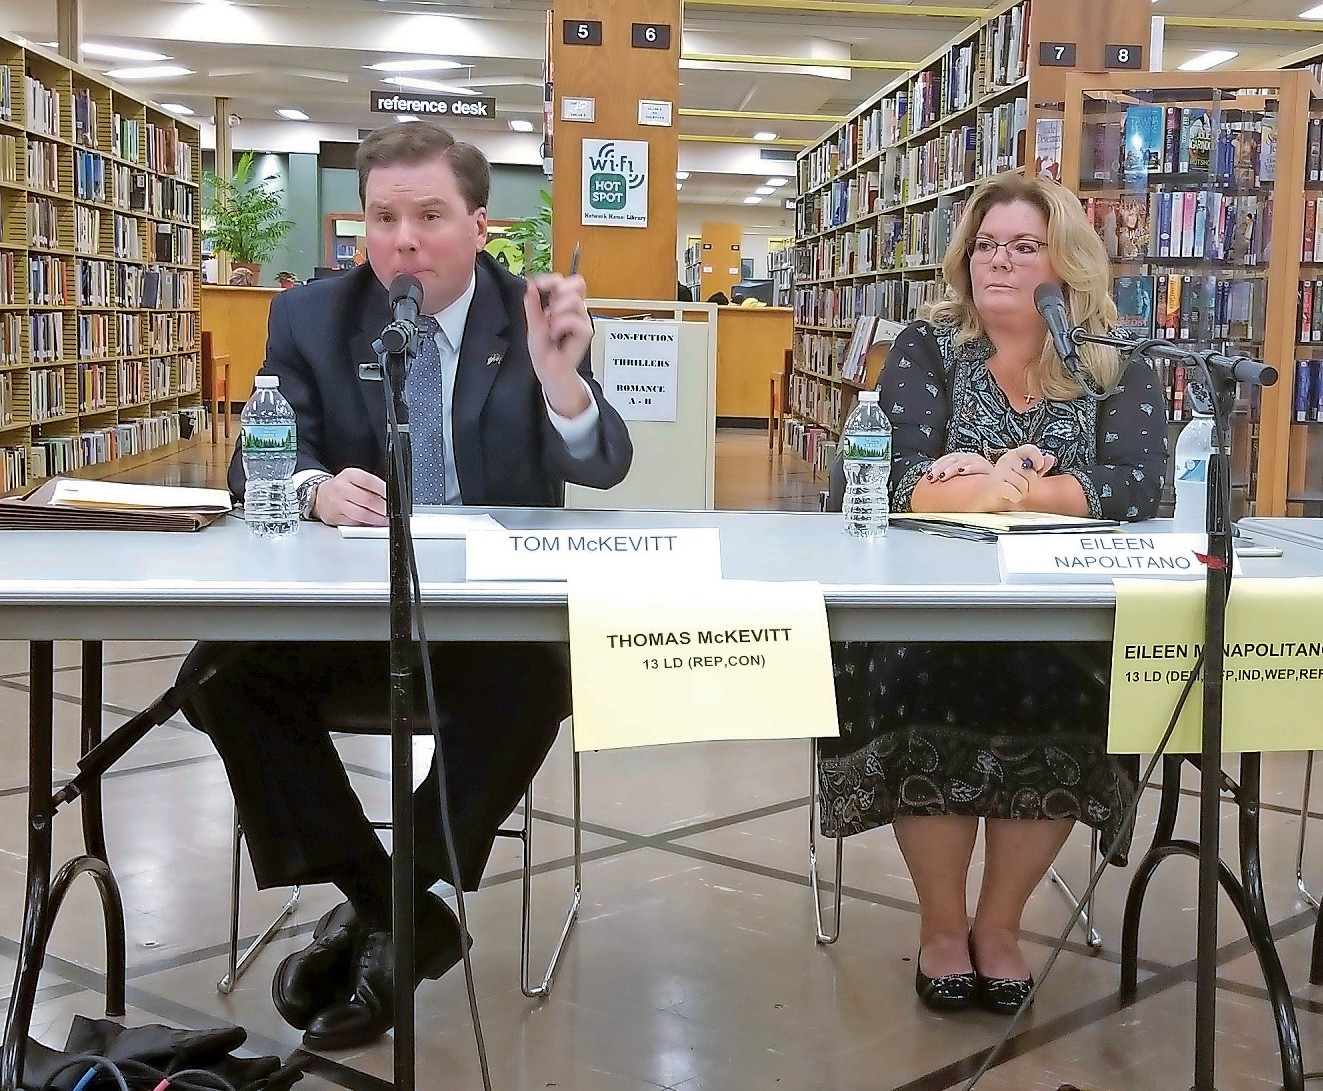 Assemblyman Thomas McKevitt and Eileen Napolitano answered questions at a candidates forum hosted by the League of Women Voters at the East Meadow Public Library on Oct. 11.